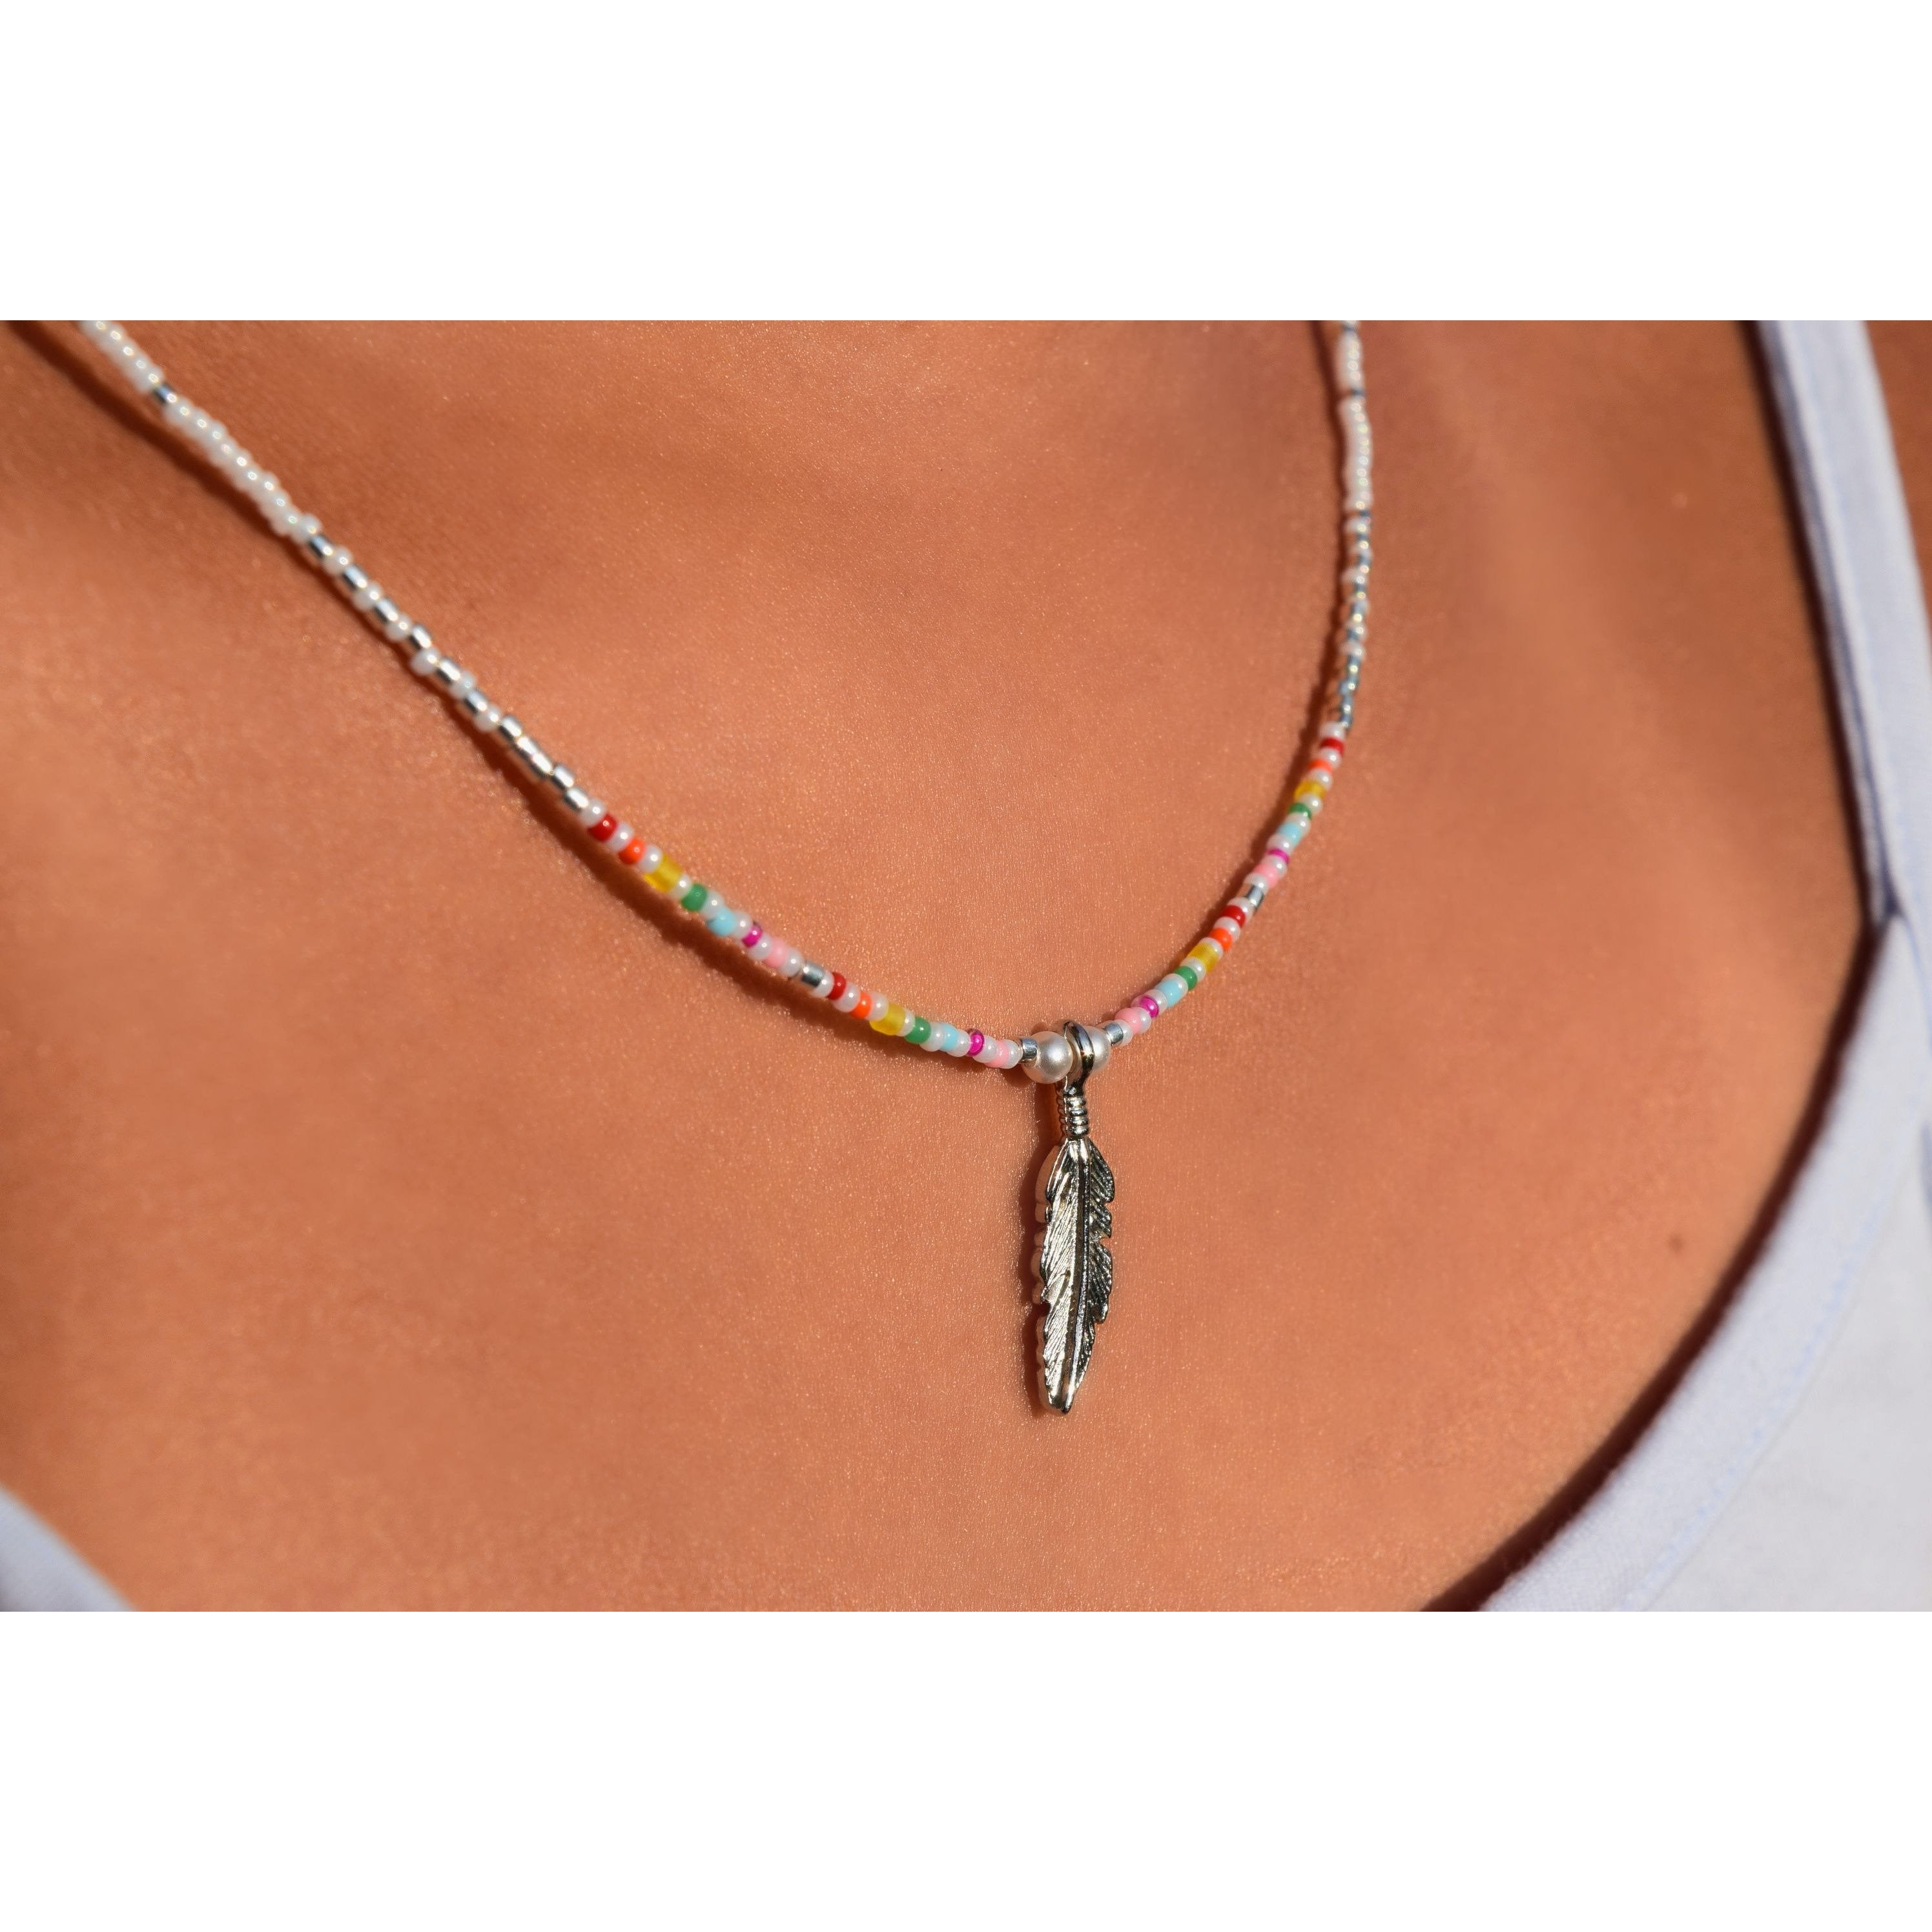 Rainbow Necklace - Nifty Sparkles